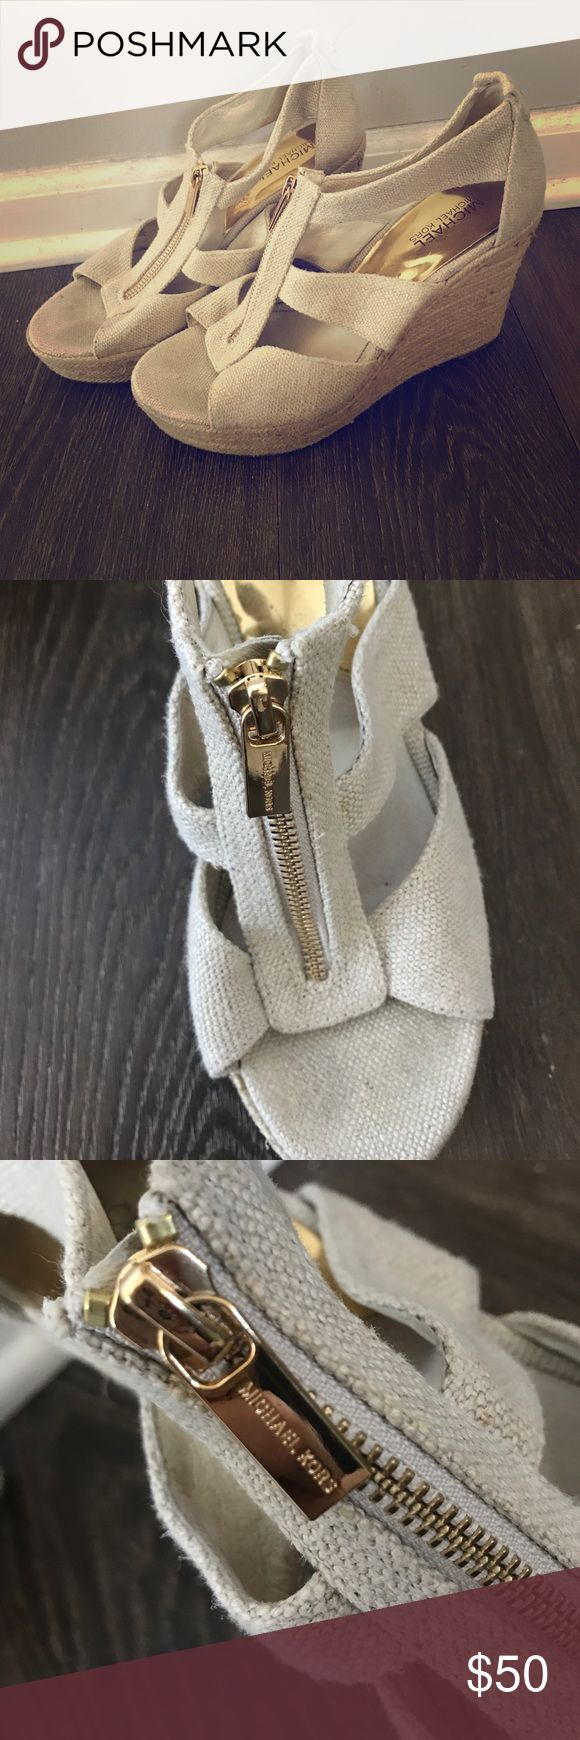 Michael Kors Espadrille Zip Up Wedges These beige zip up Espadrilles are the perfect summer shoe. Super comfortable and in great condition. Zipper and hardware are gold with Michael Kors logo. Michael Kors Shoes Espadrilles